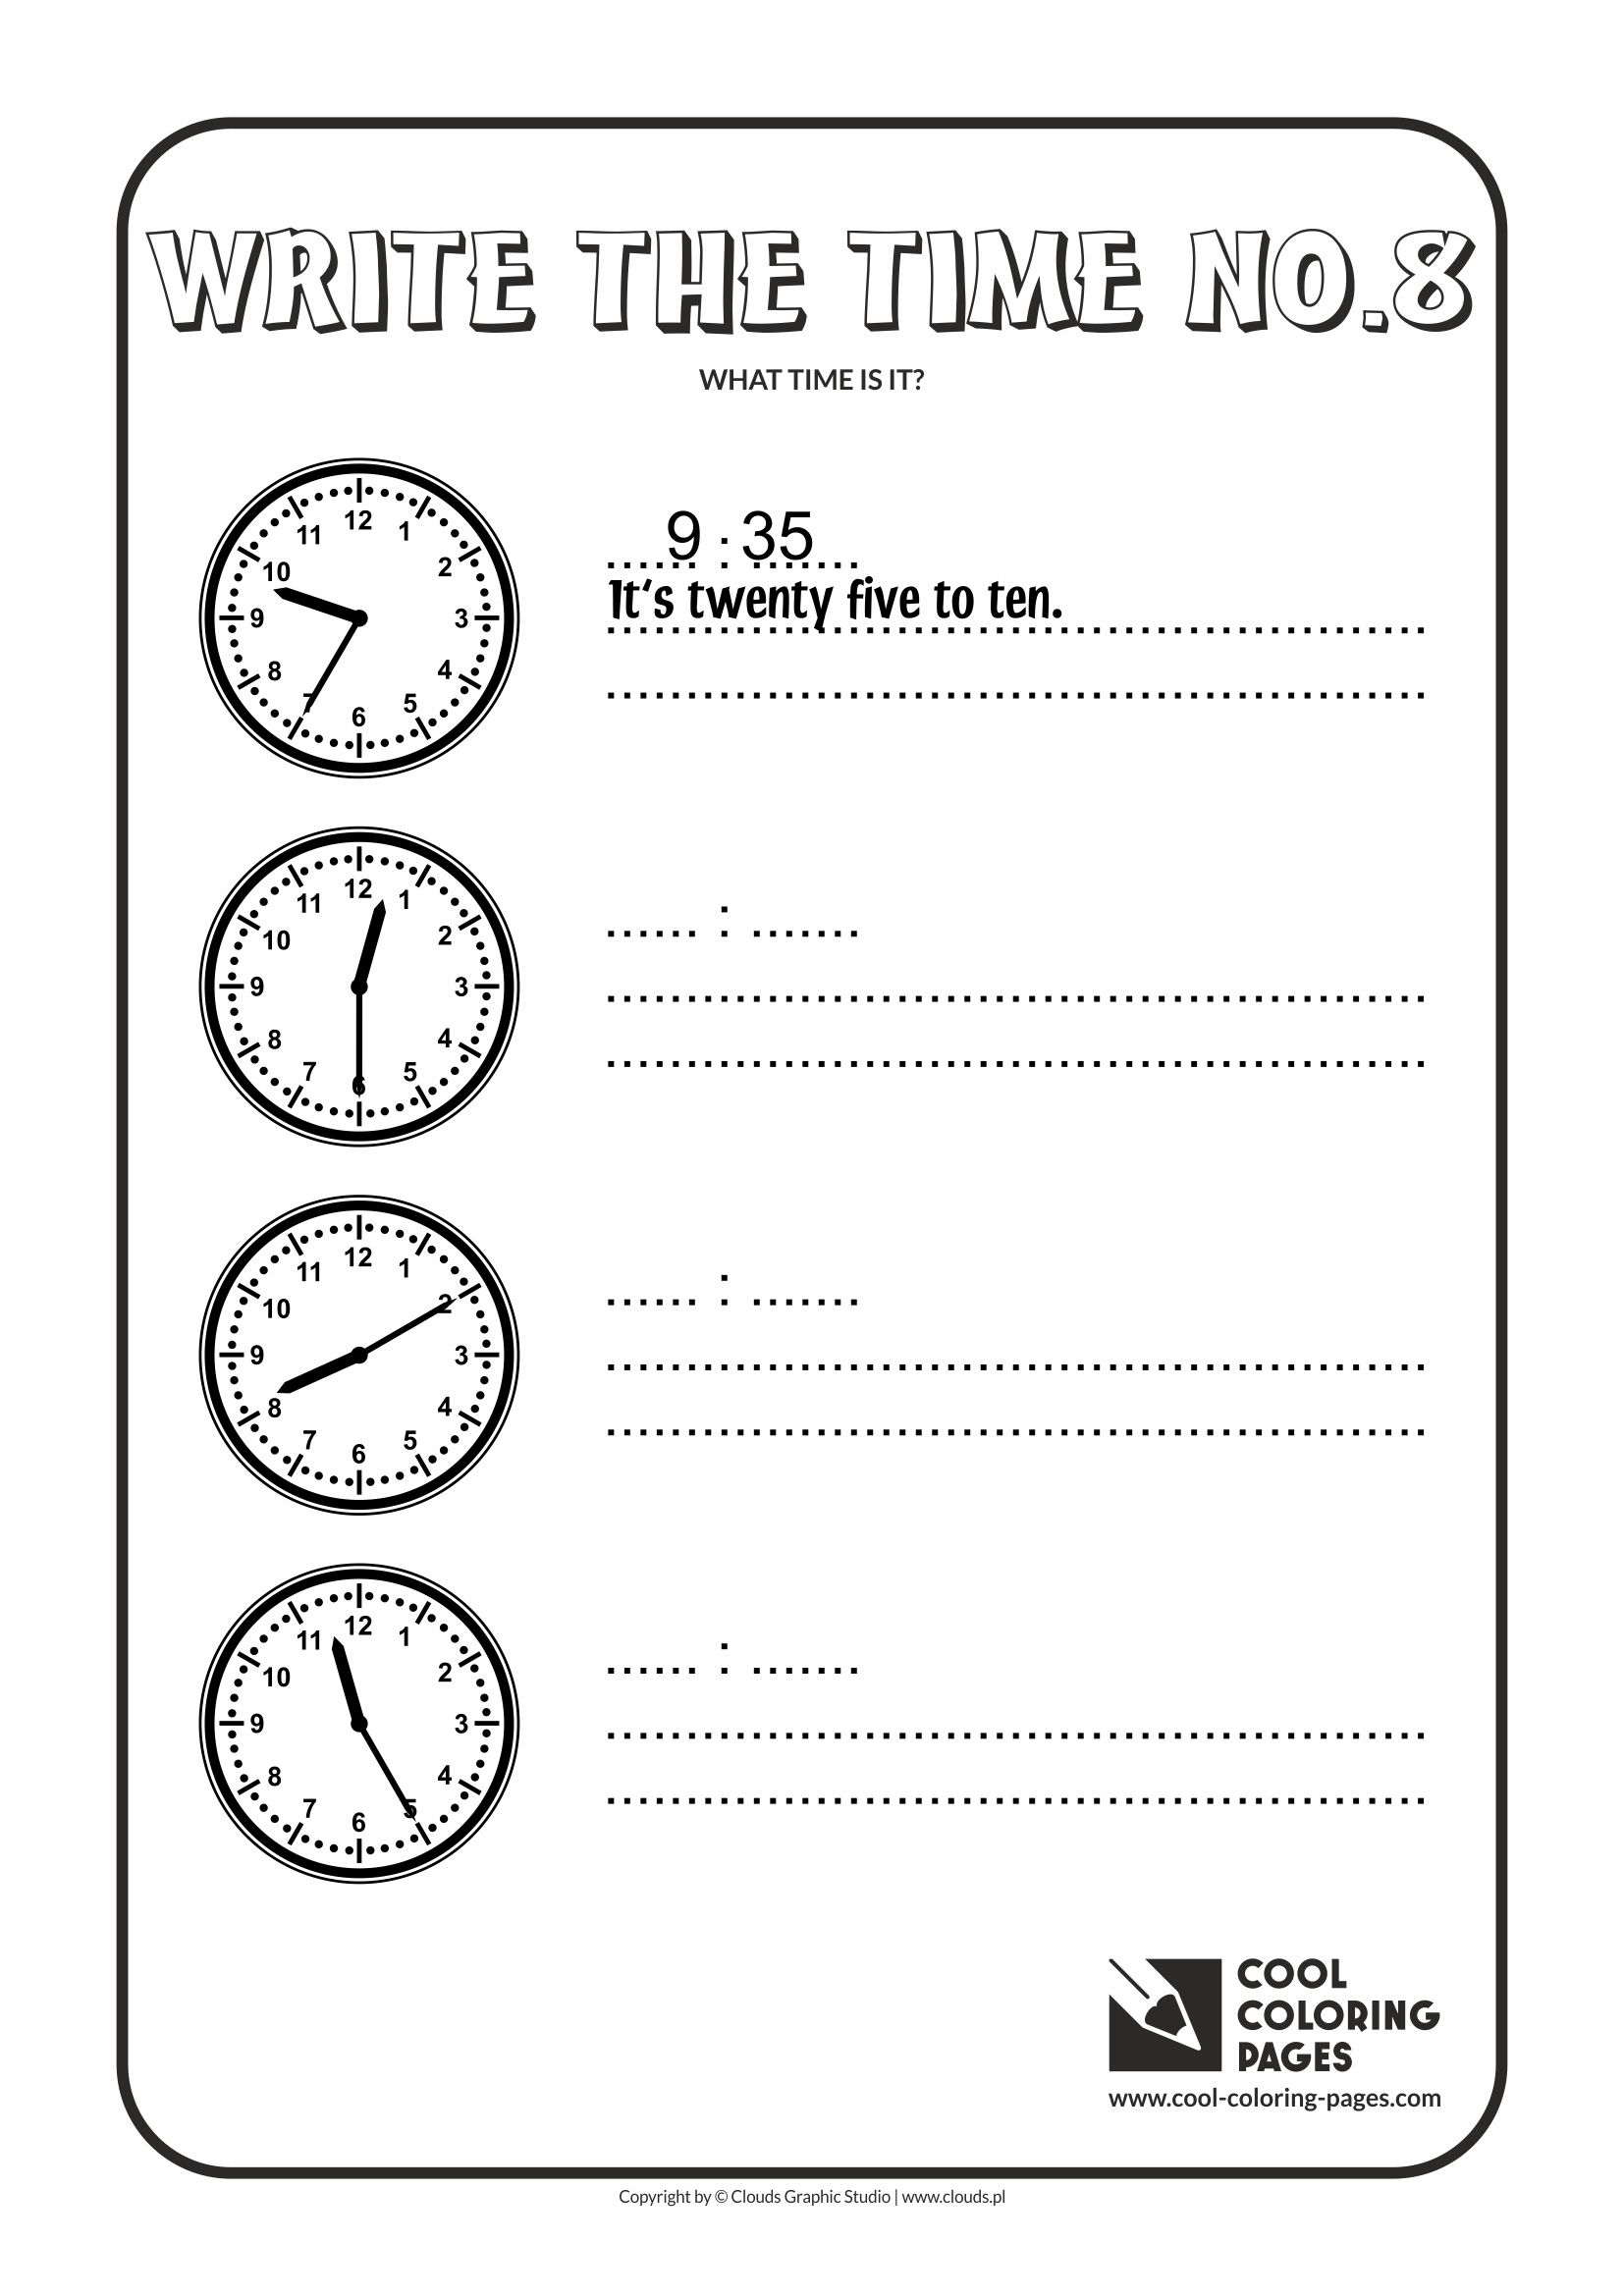 Cool Coloring Pages - Time / Write the time no.8